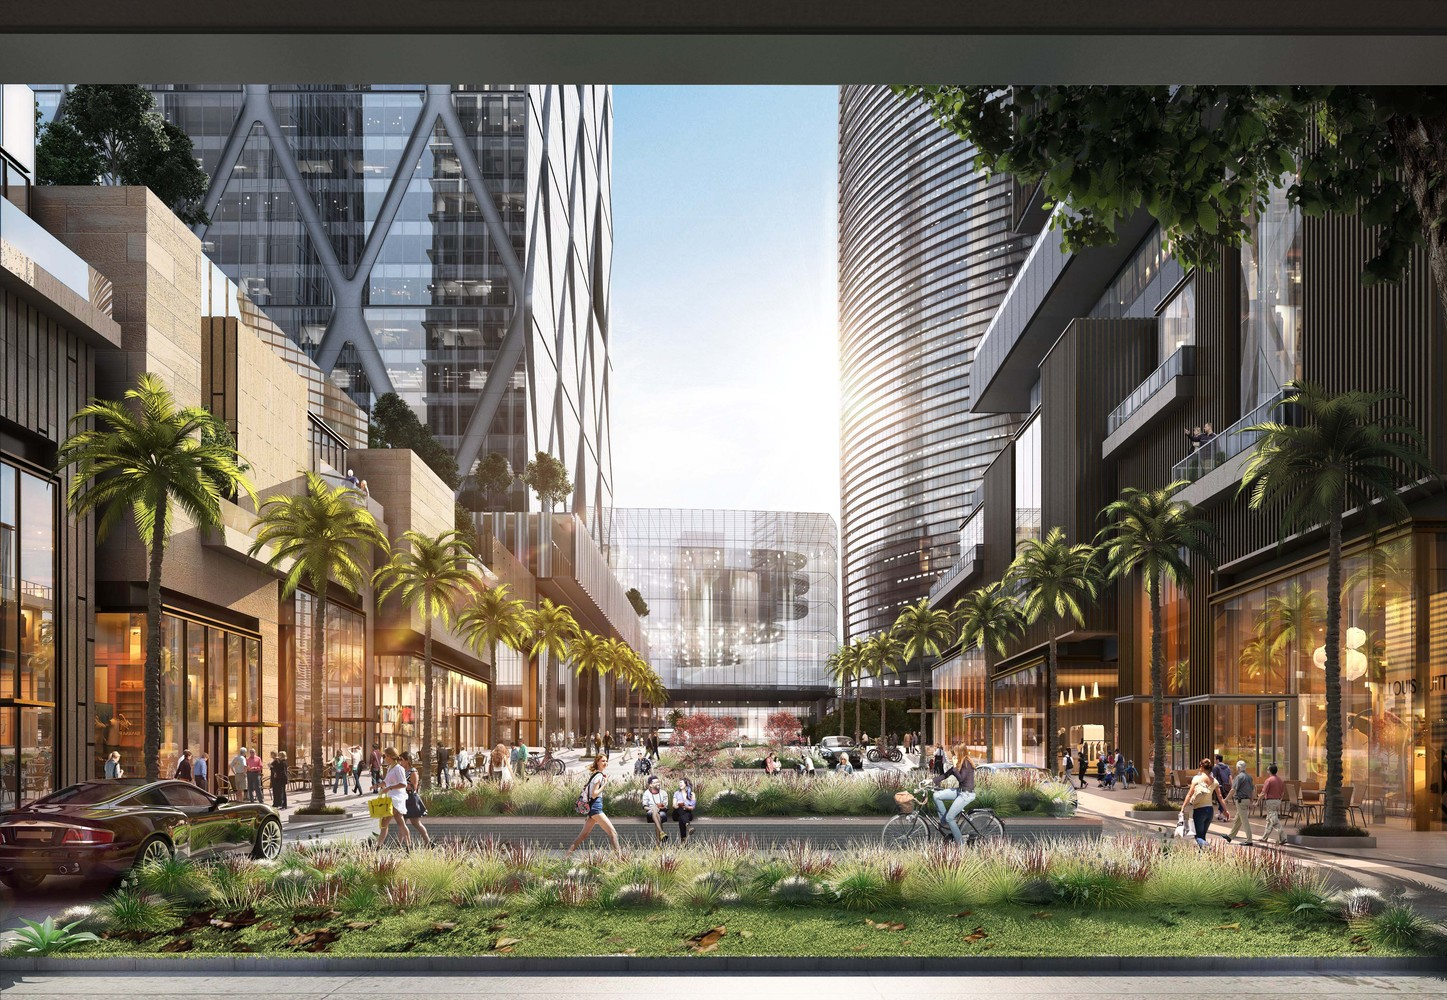 Gallery of Vertical Village - SOM Leads Design of Major Mixed-Use